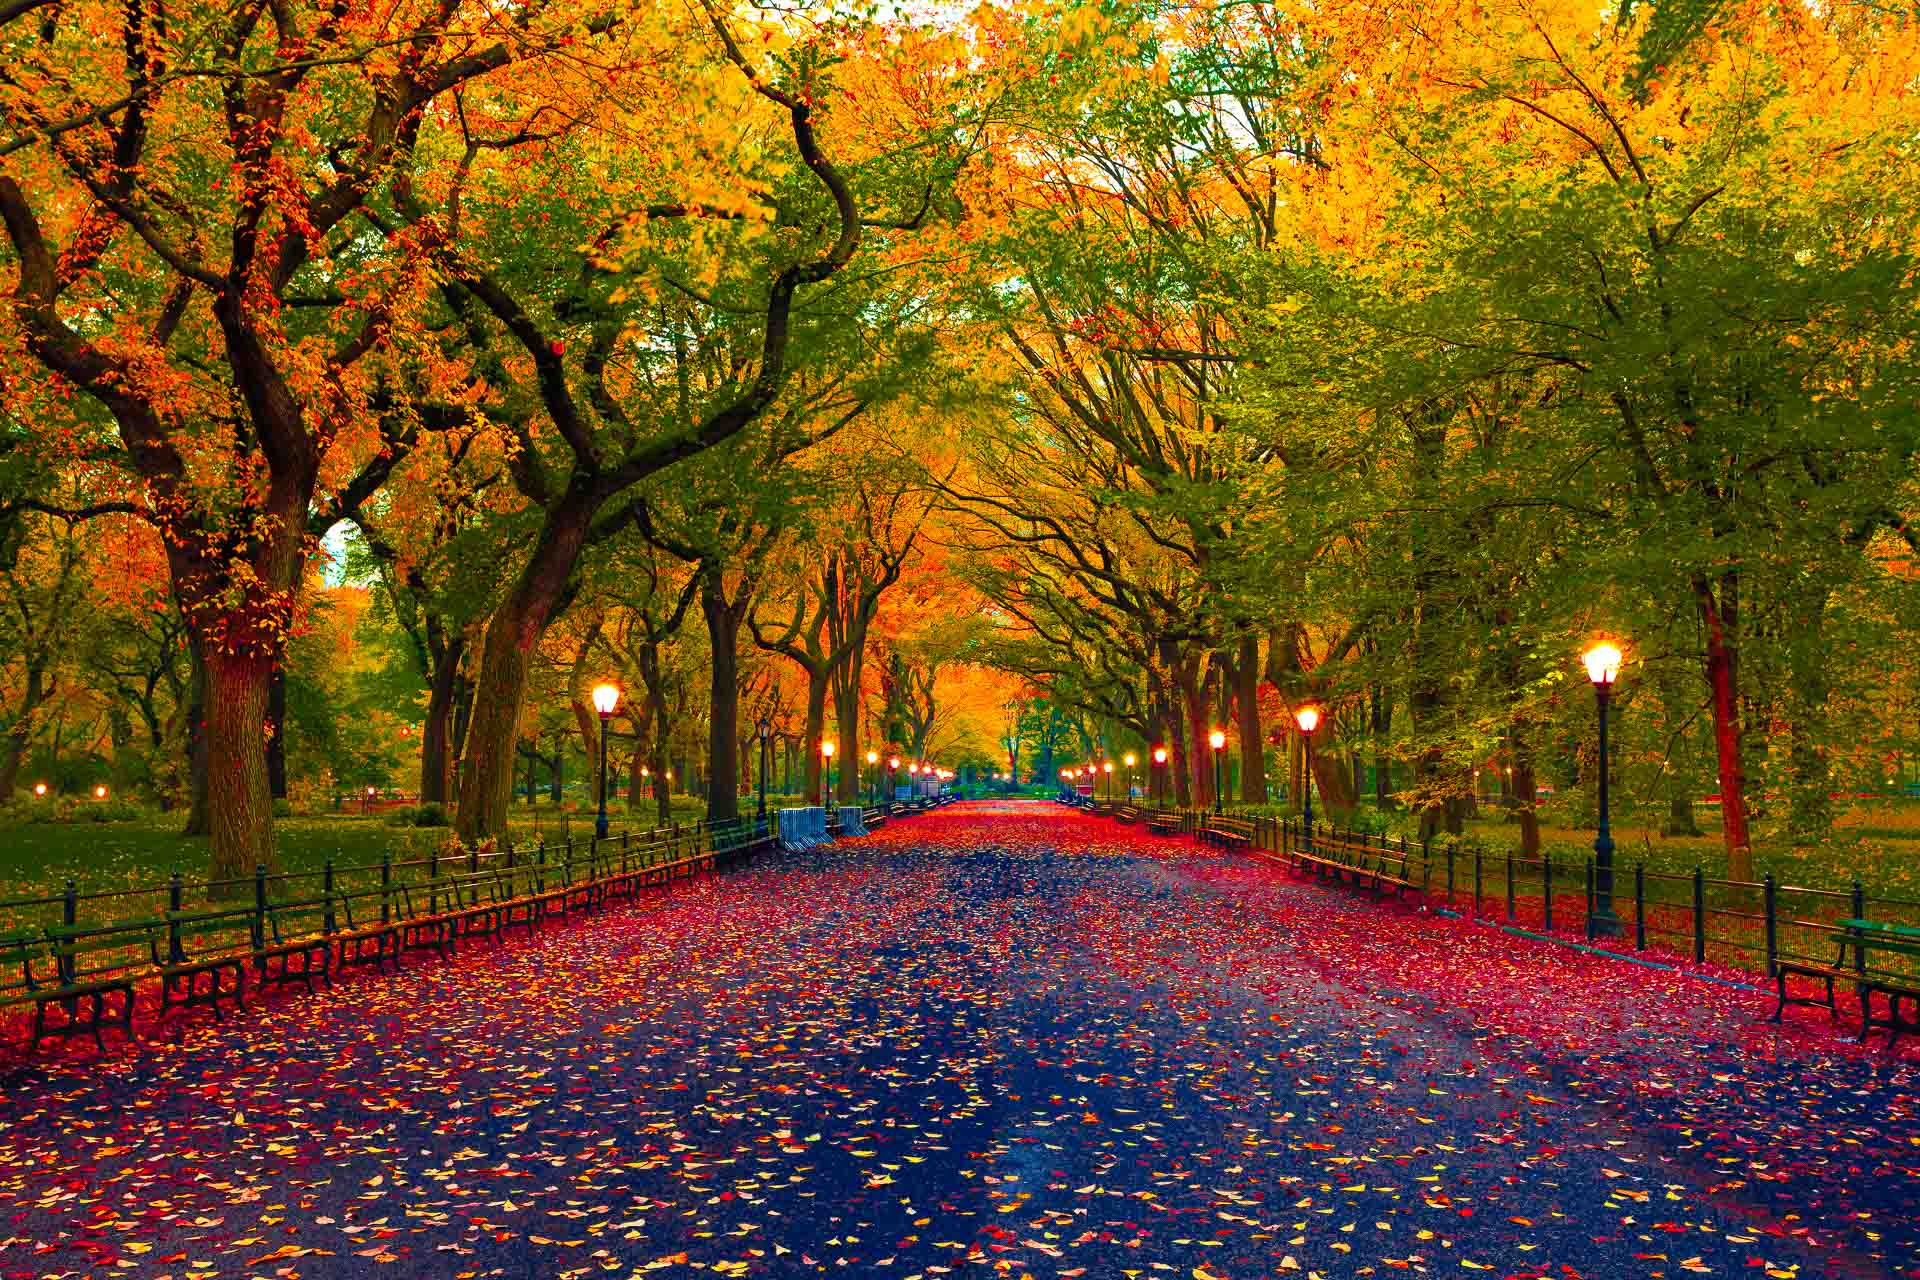 Fall leaves on a pathway in New York City's Central Park